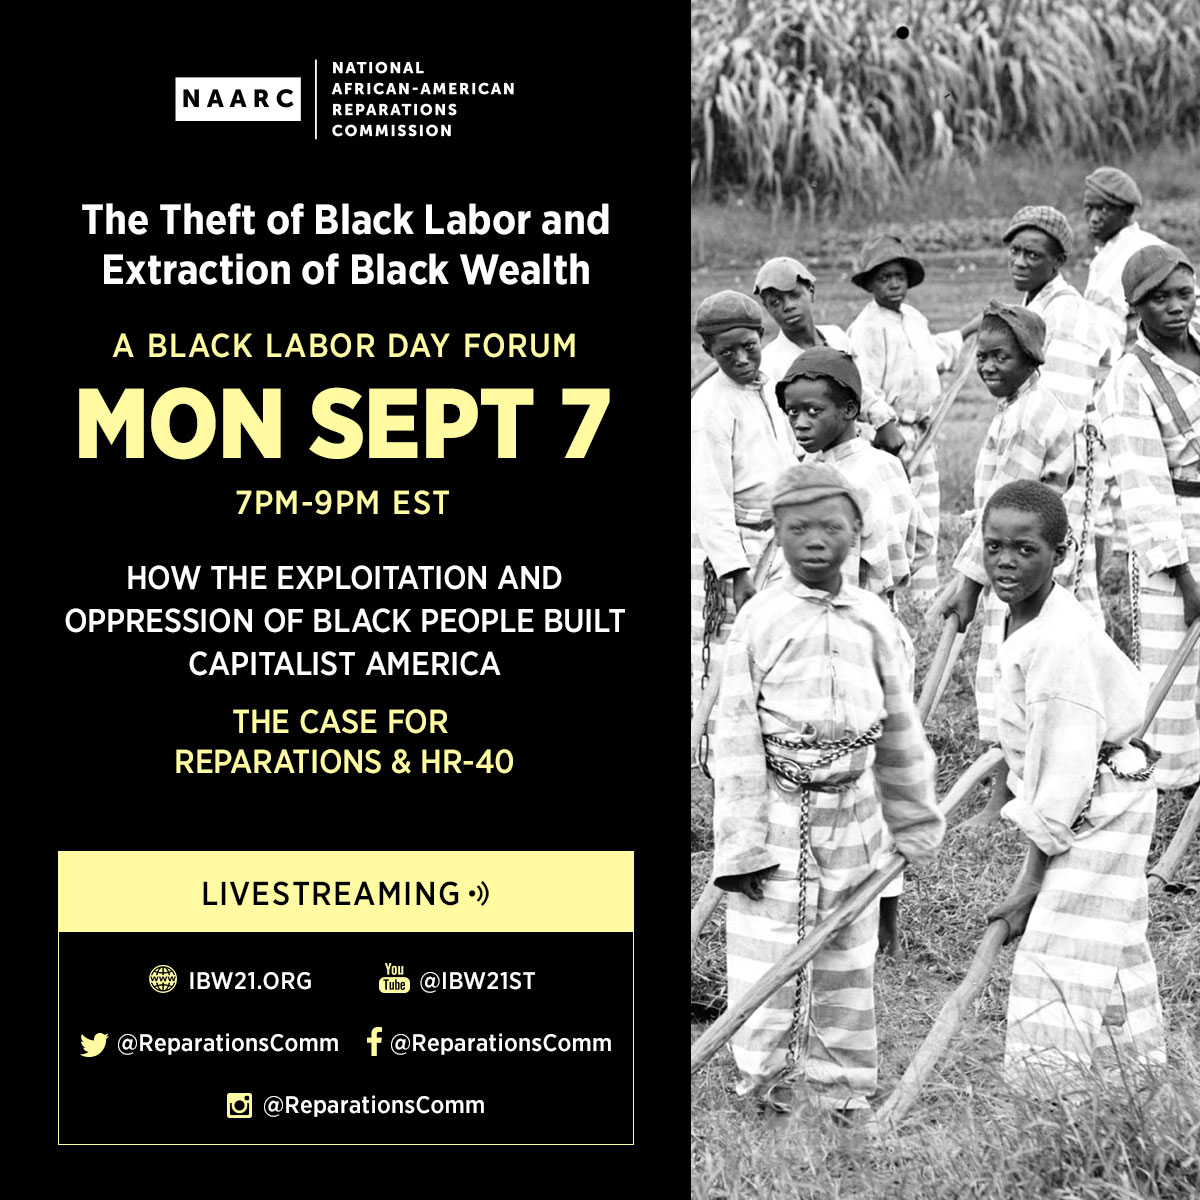 "September 7, 2020 — The Institute of the Black World 21st Century (IBW21) in collaboration with the National African American Reparations Commission (NAARC) present a Black Labor Day Forum ""The Theft of Black Labor and Extraction of Black Wealth: How the Exploitation and Oppression of Black People Built Capitalist America - The Case for Reparations and HR-40""."